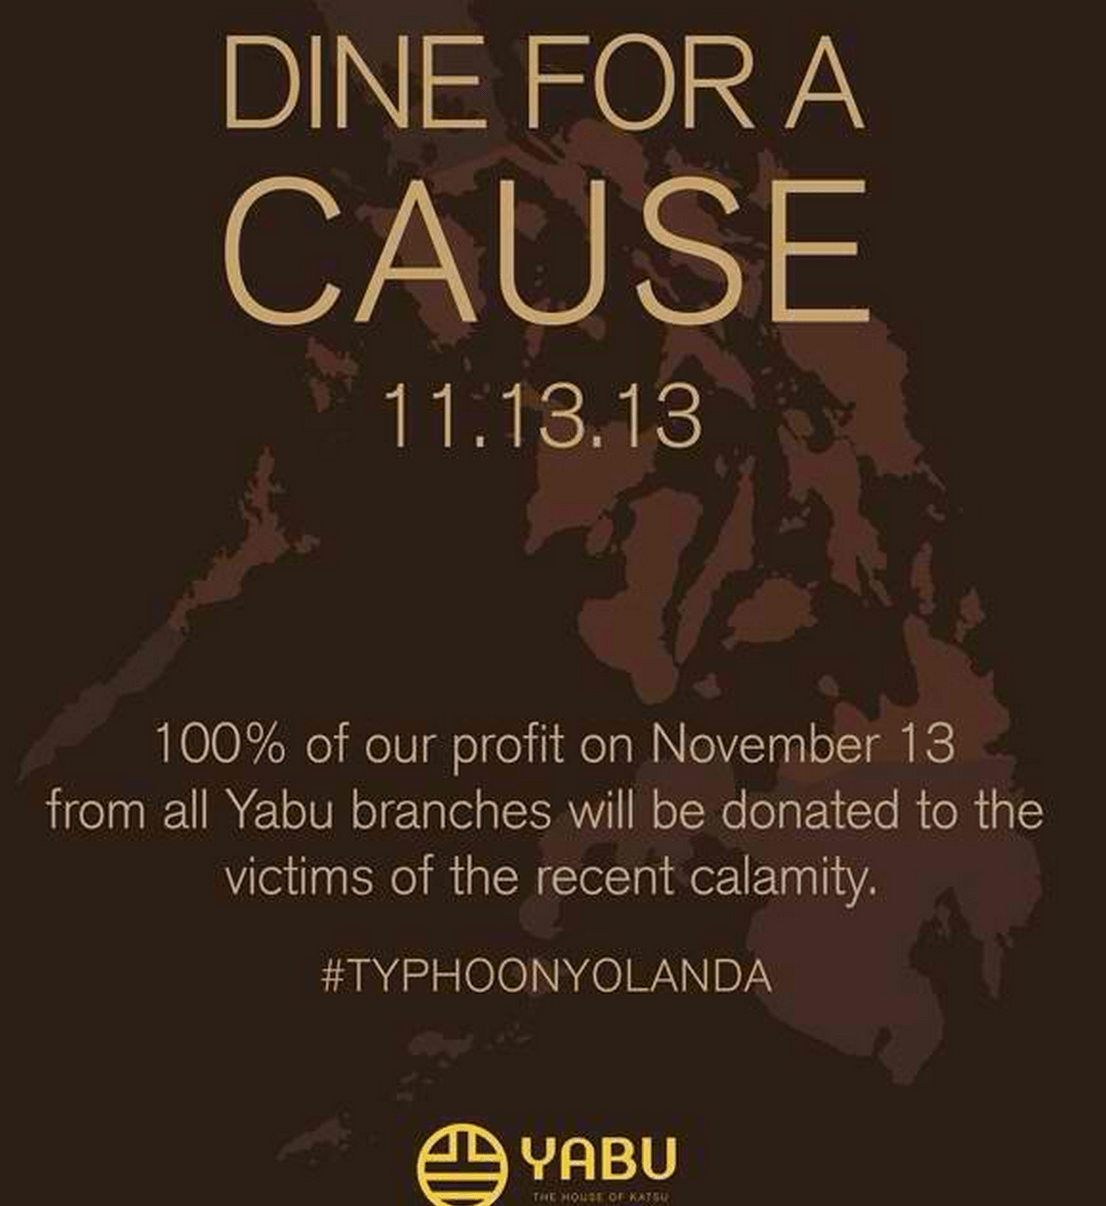 Yolanda Dine for a cause